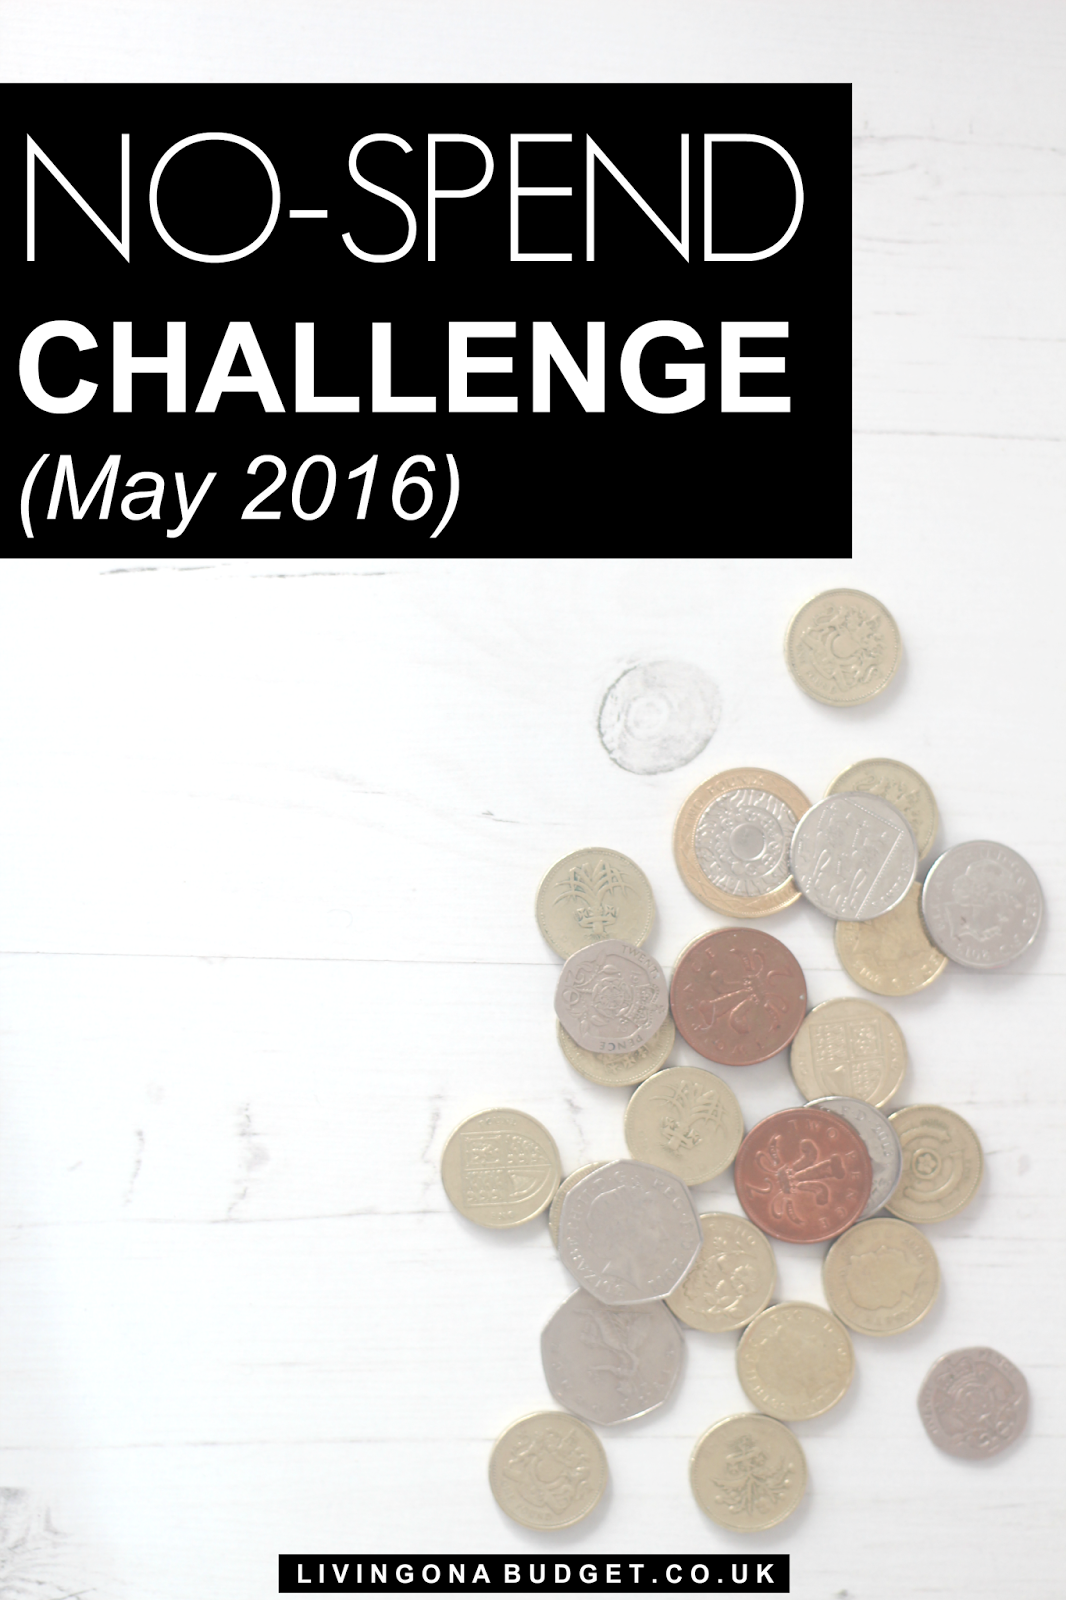 Fancy a challenge? Join me in the ‪#‎nospendchallenge‬ & see how much you can save this month!